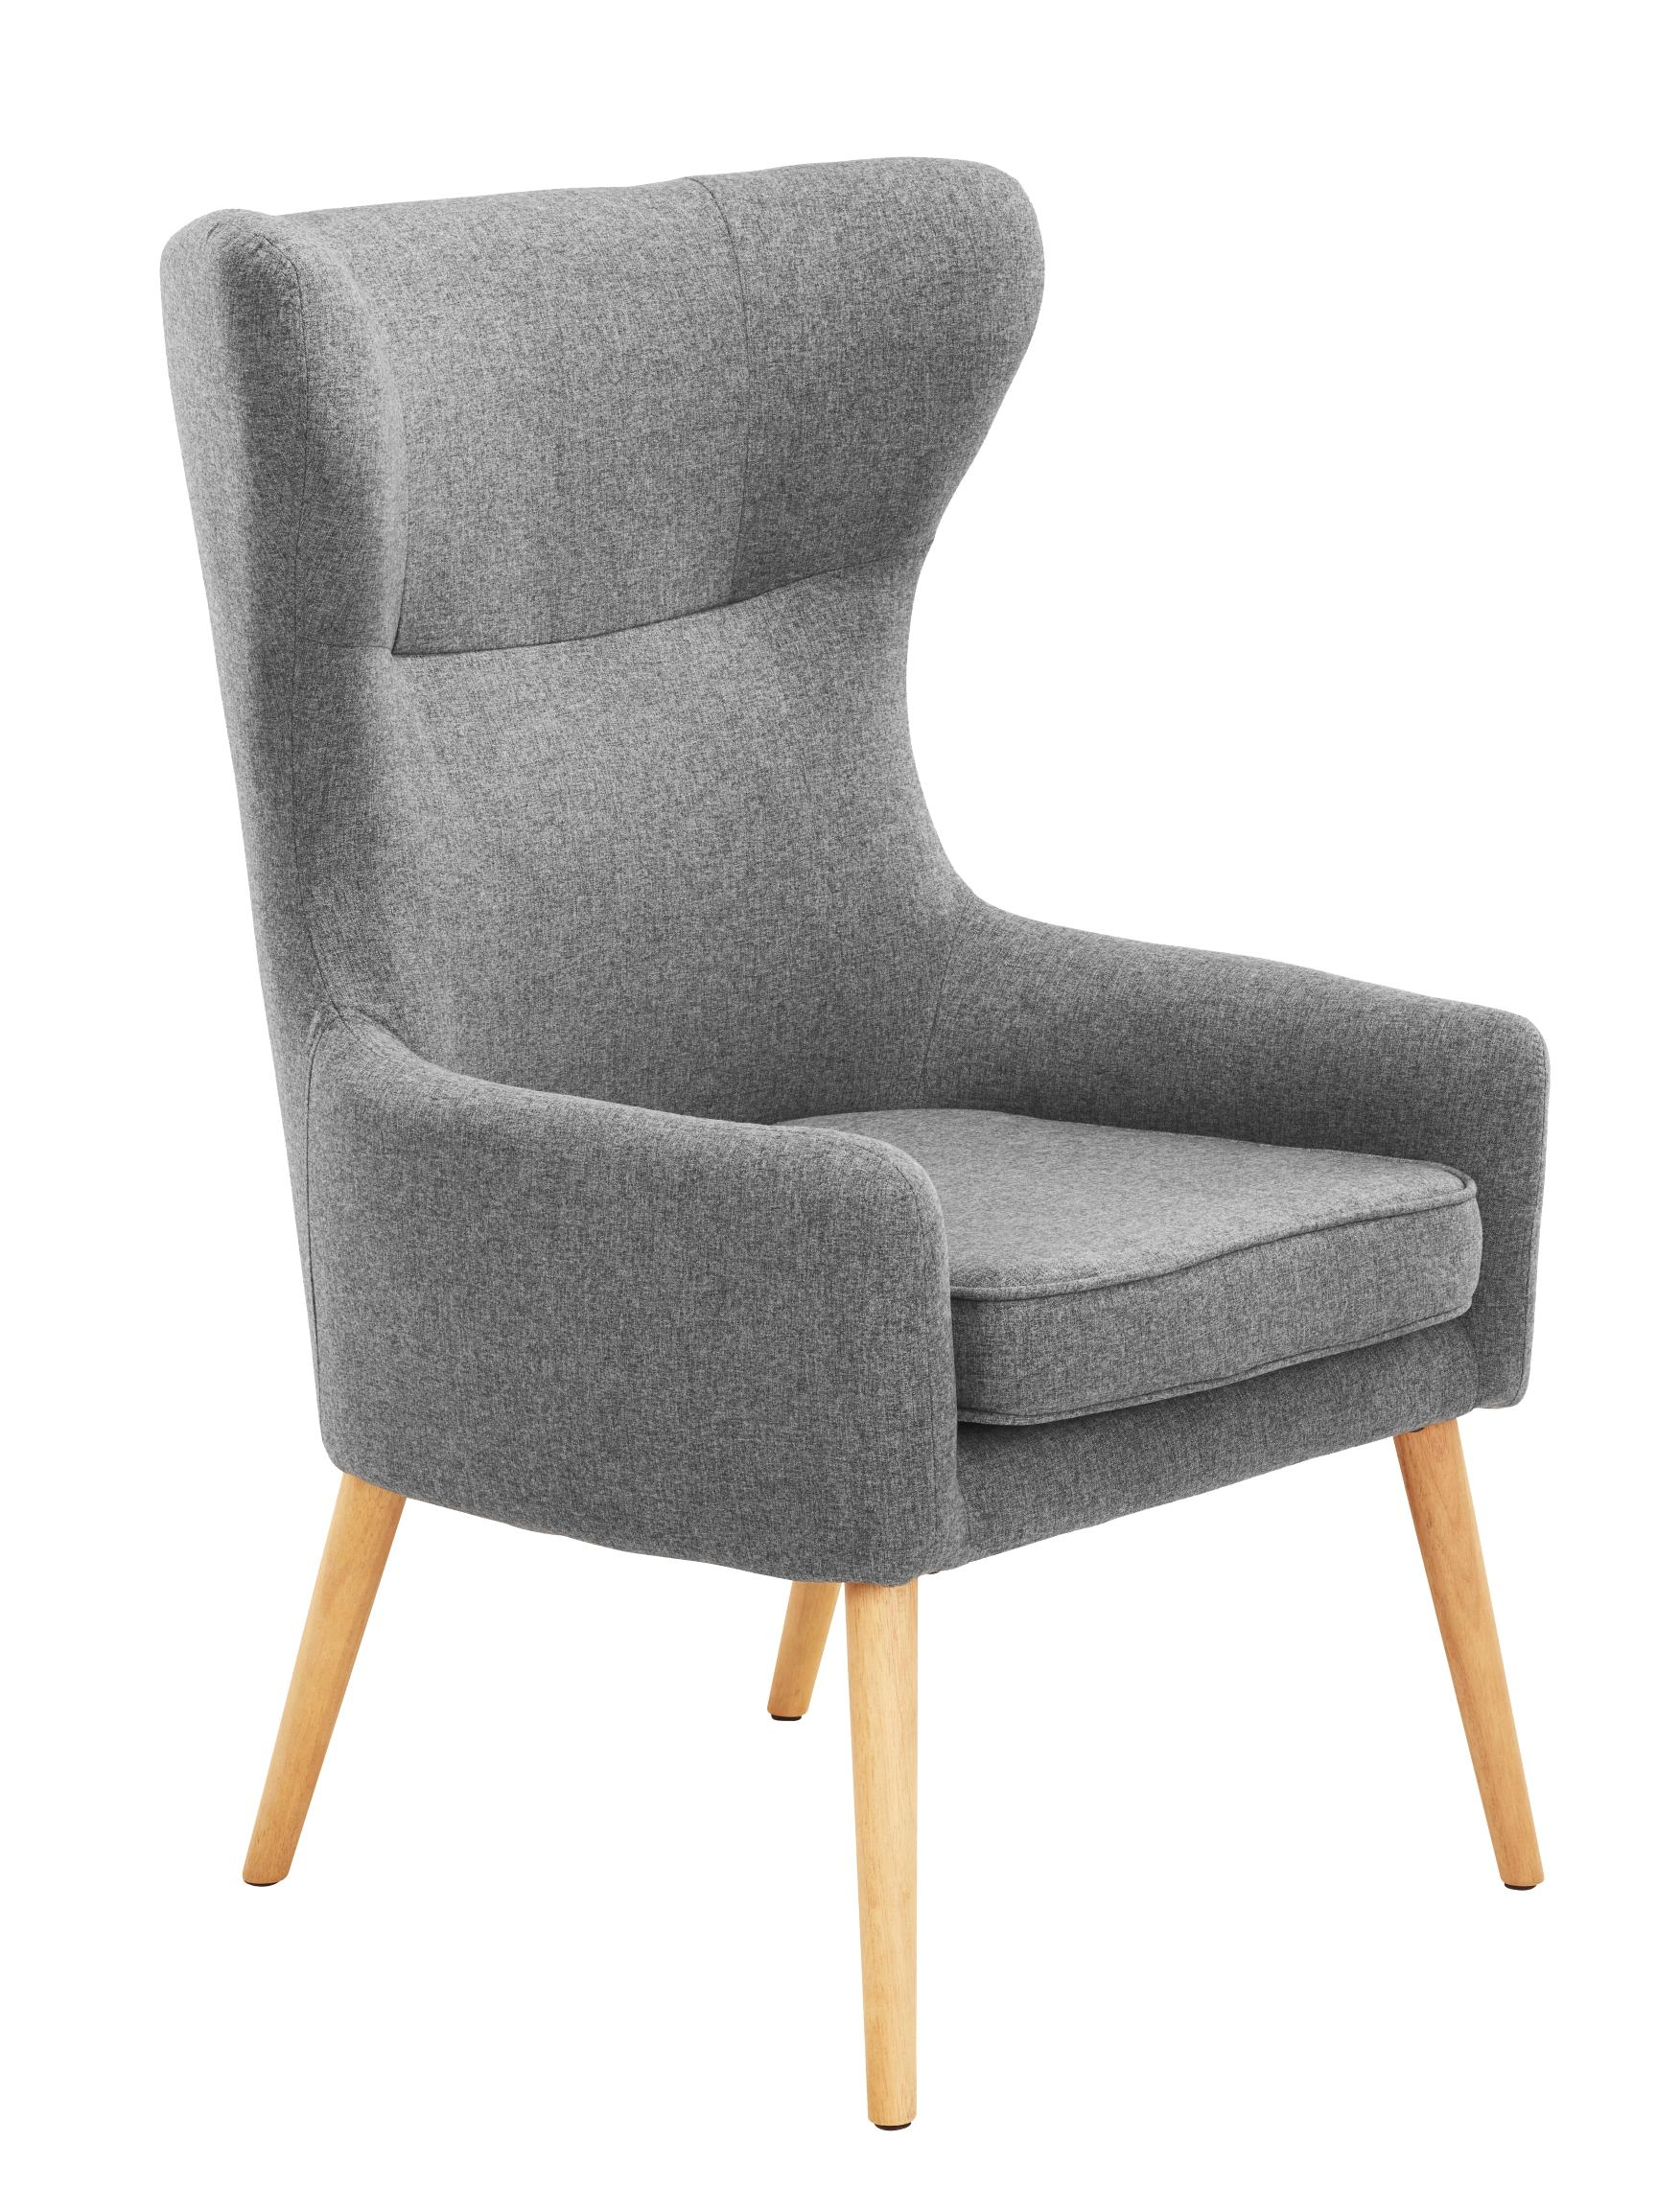 Fauteuil Bev neuf